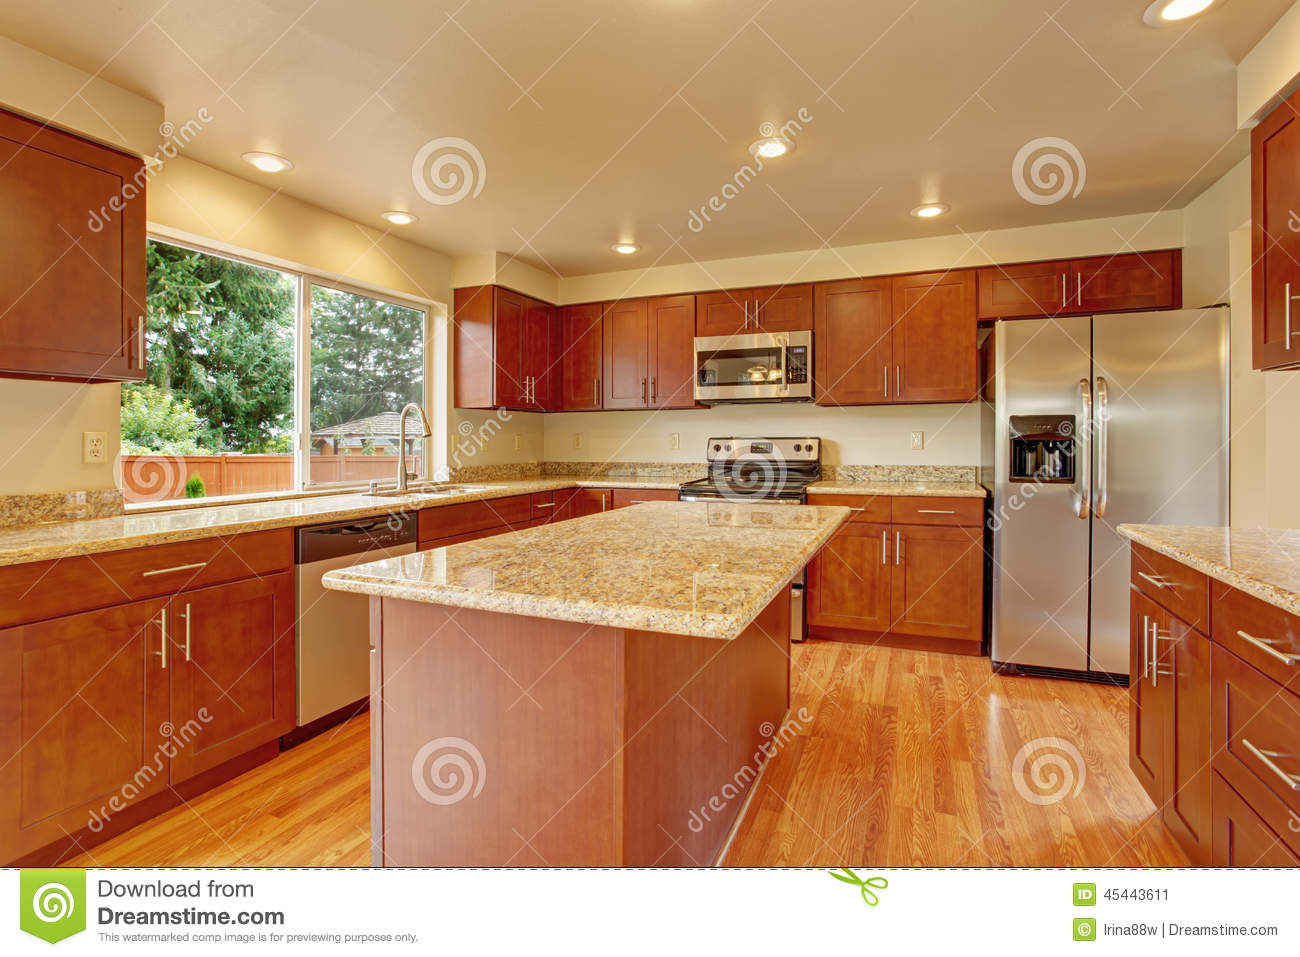 Kitchen furniture with island in empty house stock photo for Mobilia kitchen